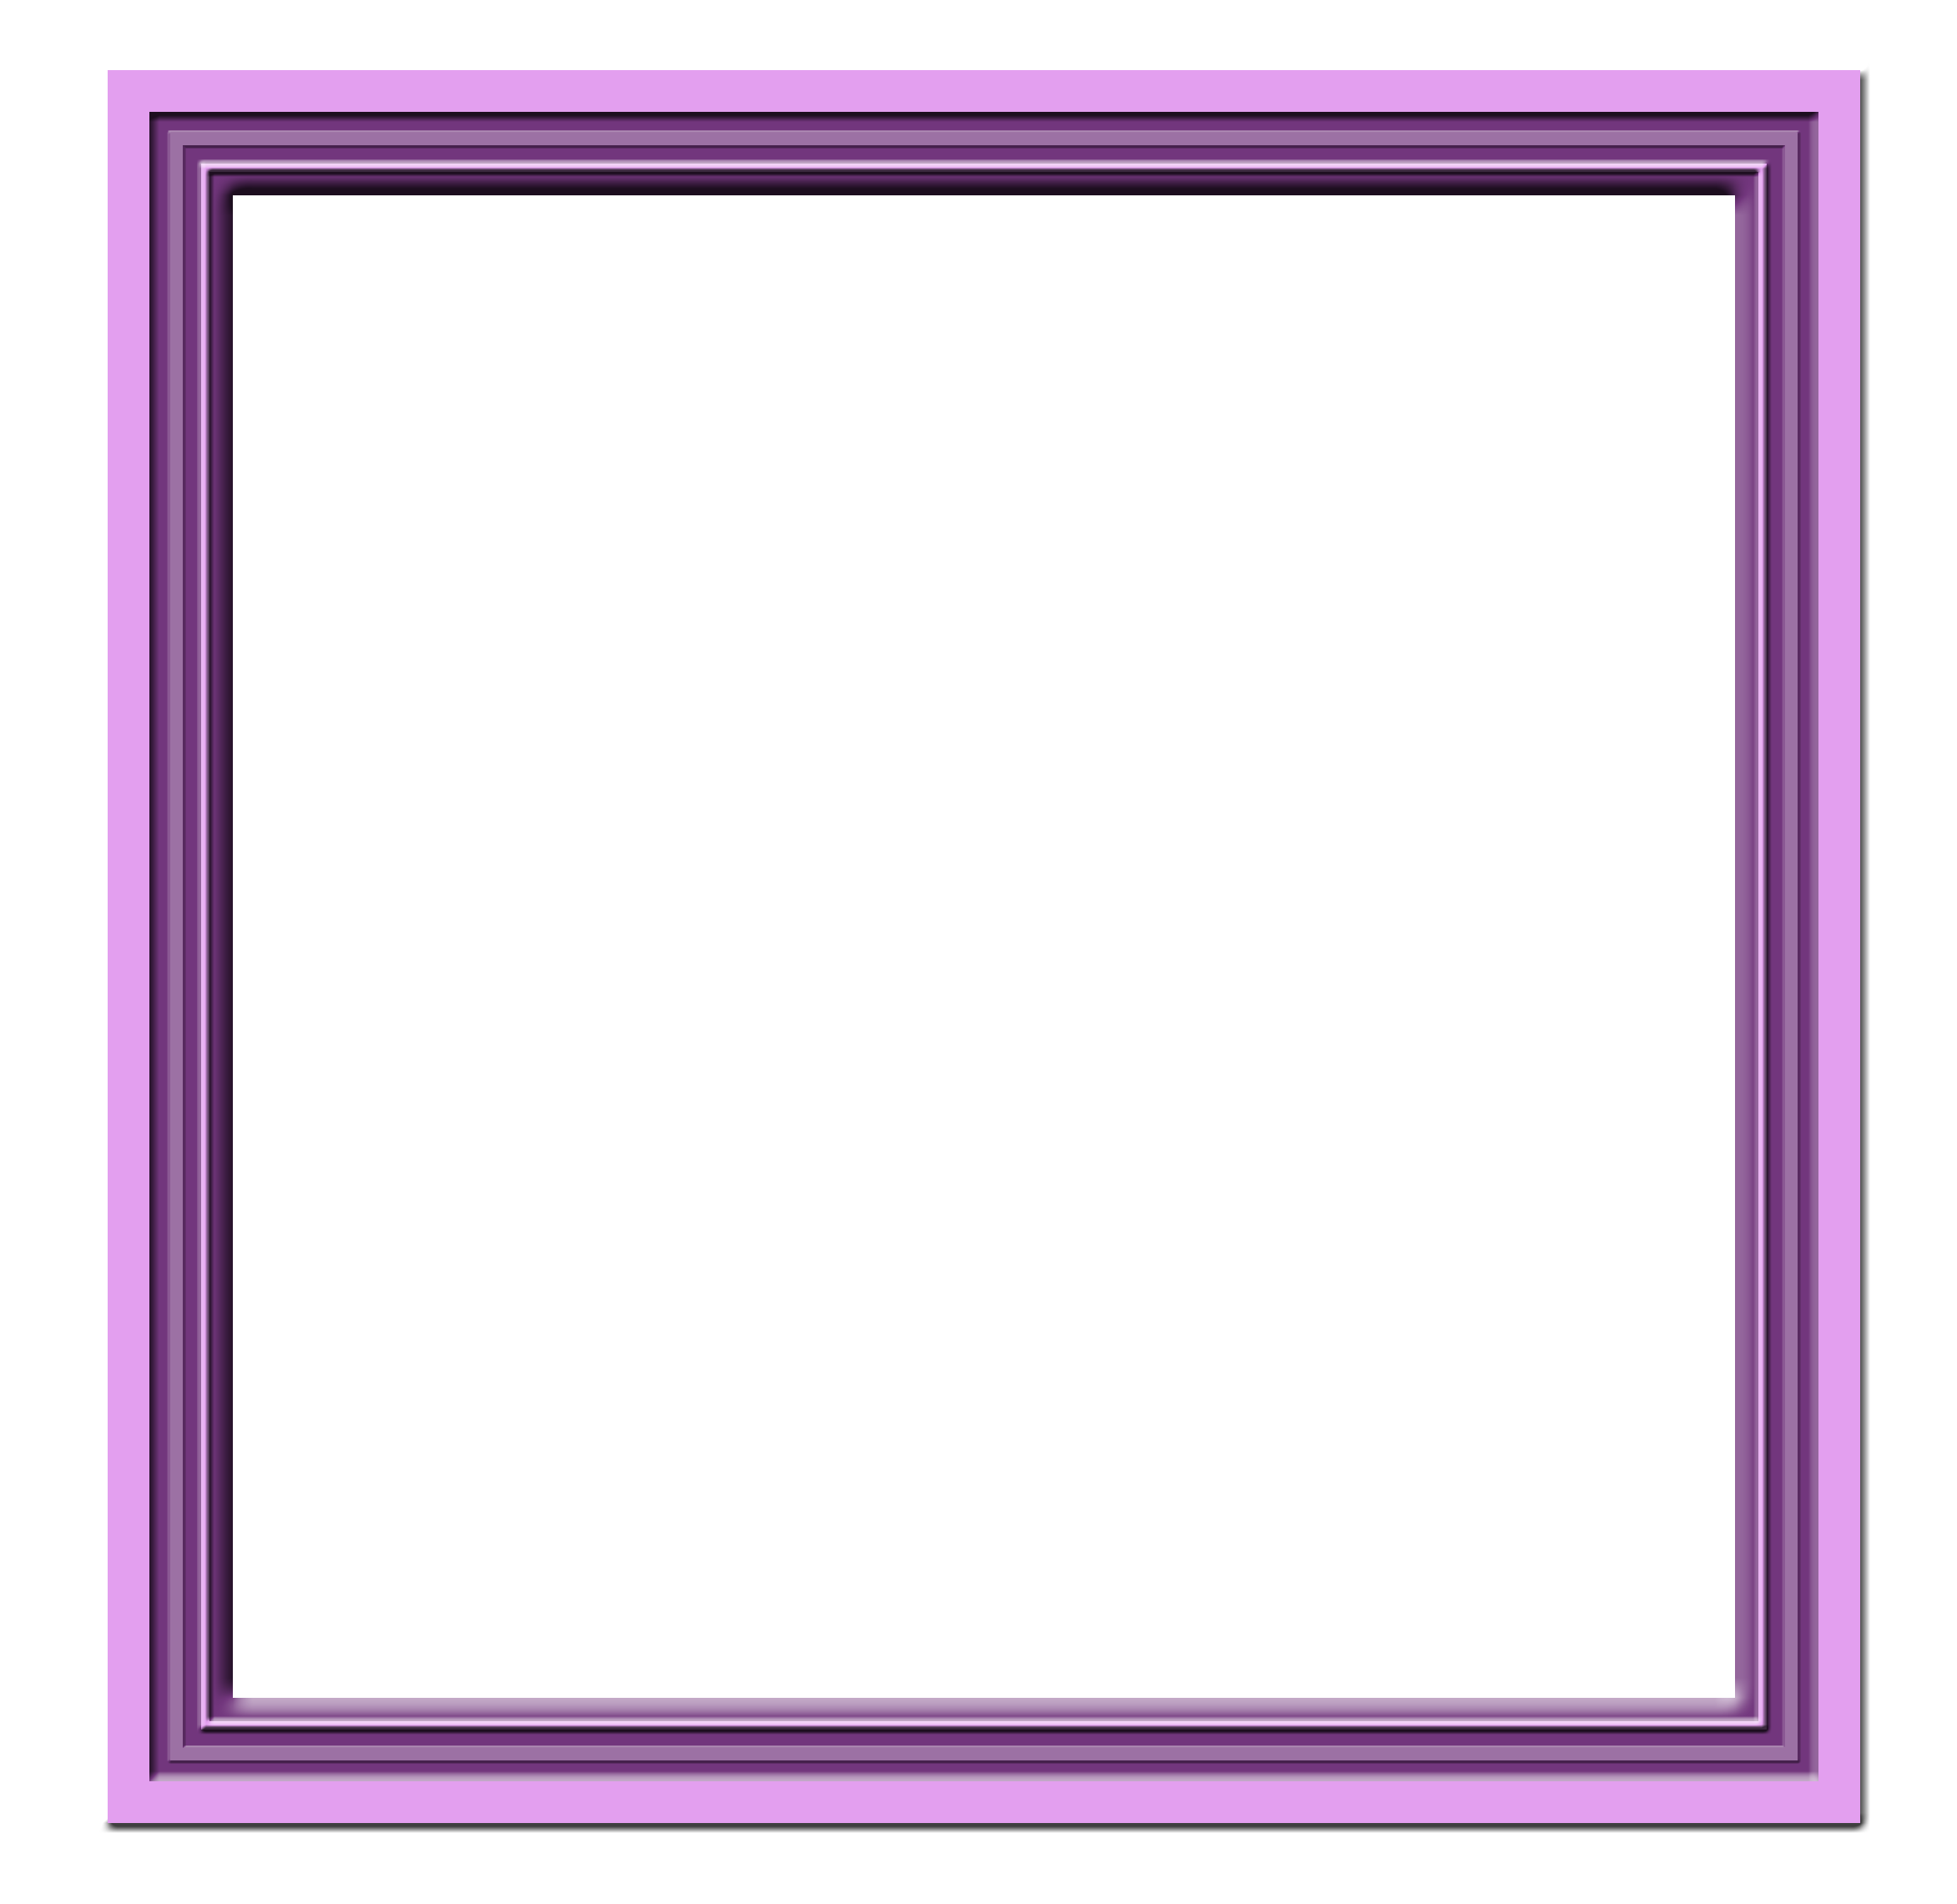 Jazz clipart border. Free photoshop frames and